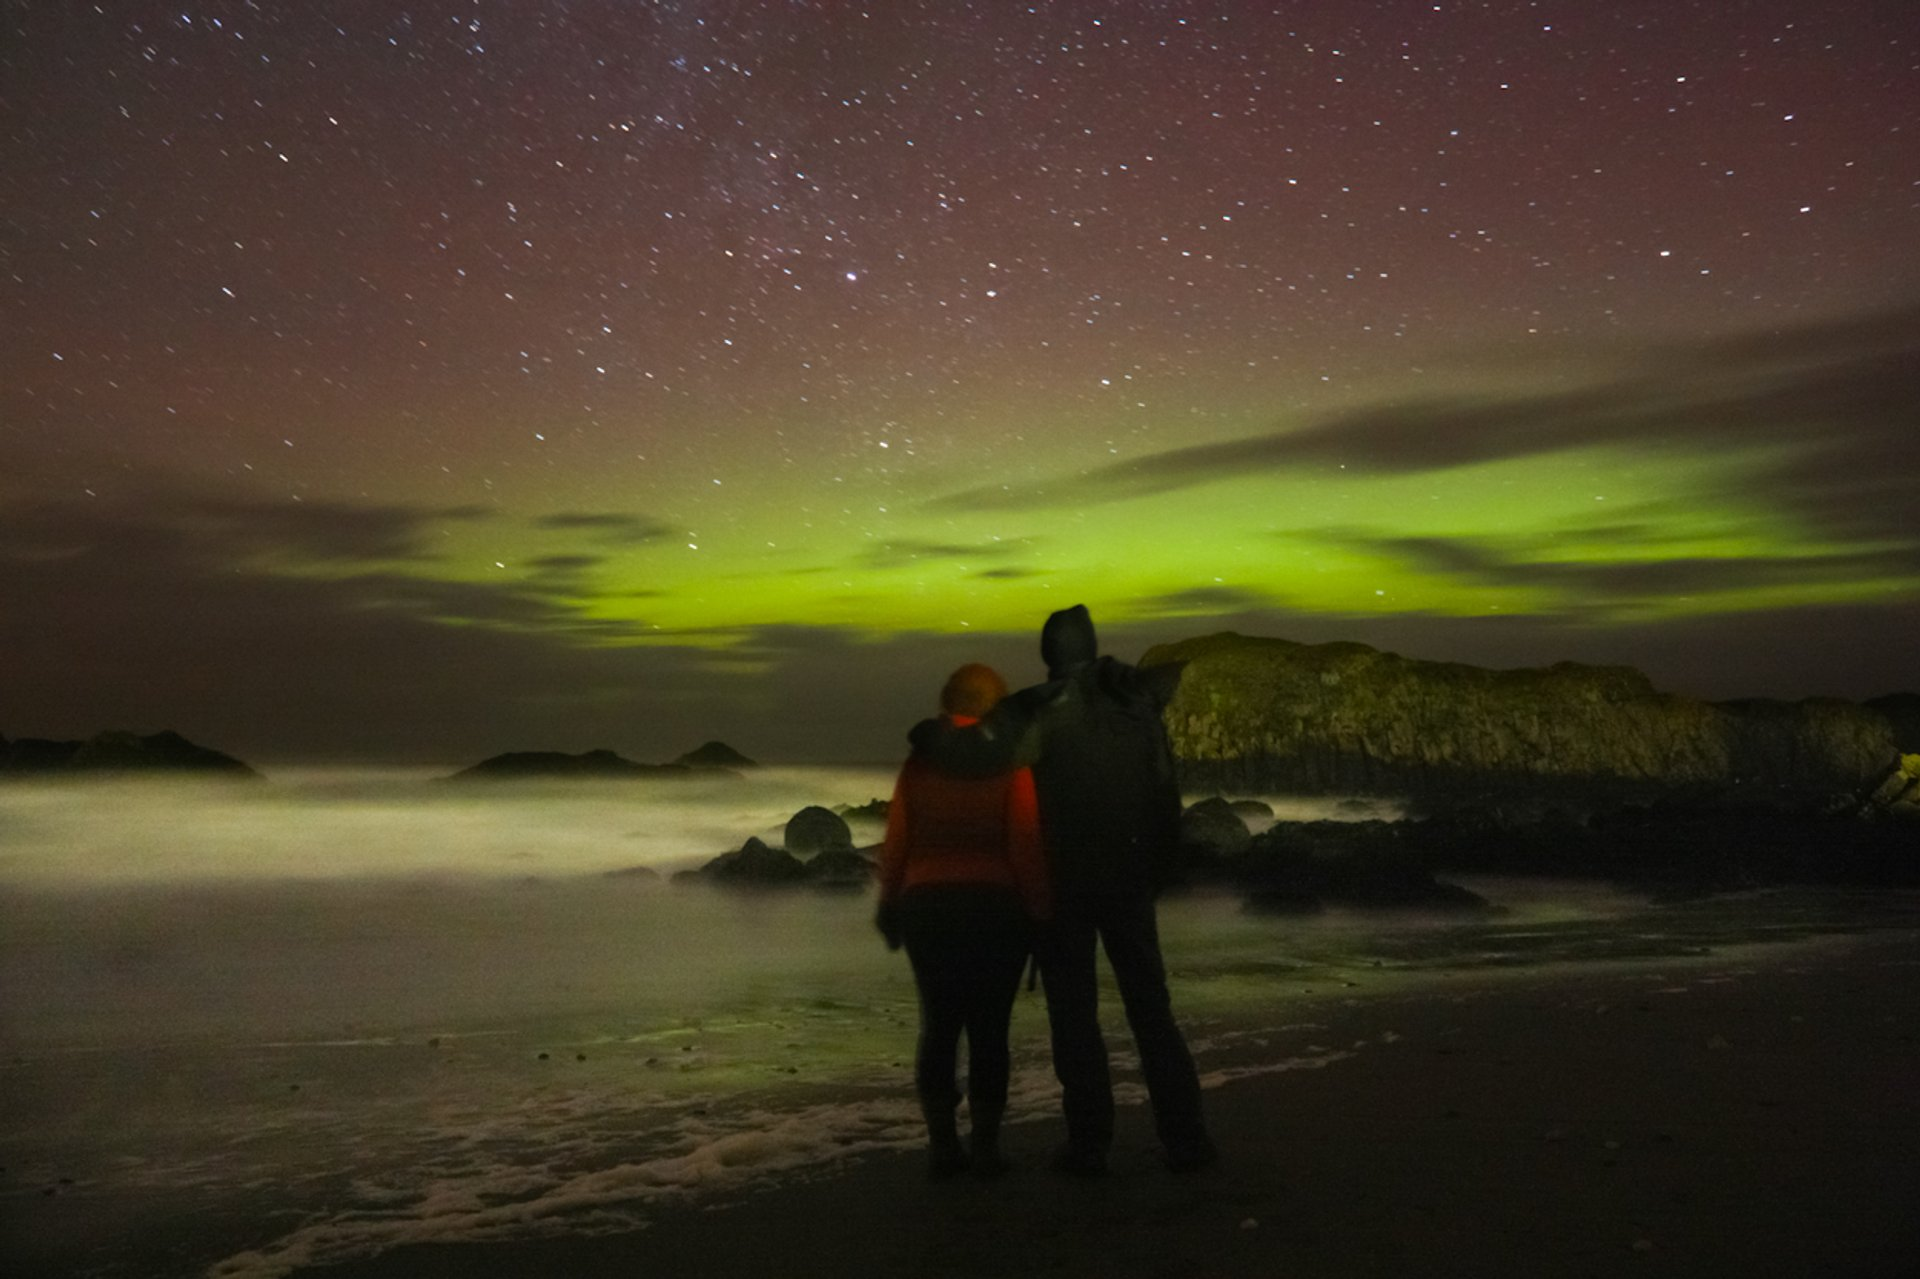 Aurora Borealis taken on the beach at Ballintoy Harbour on January 22nd 2012 2019